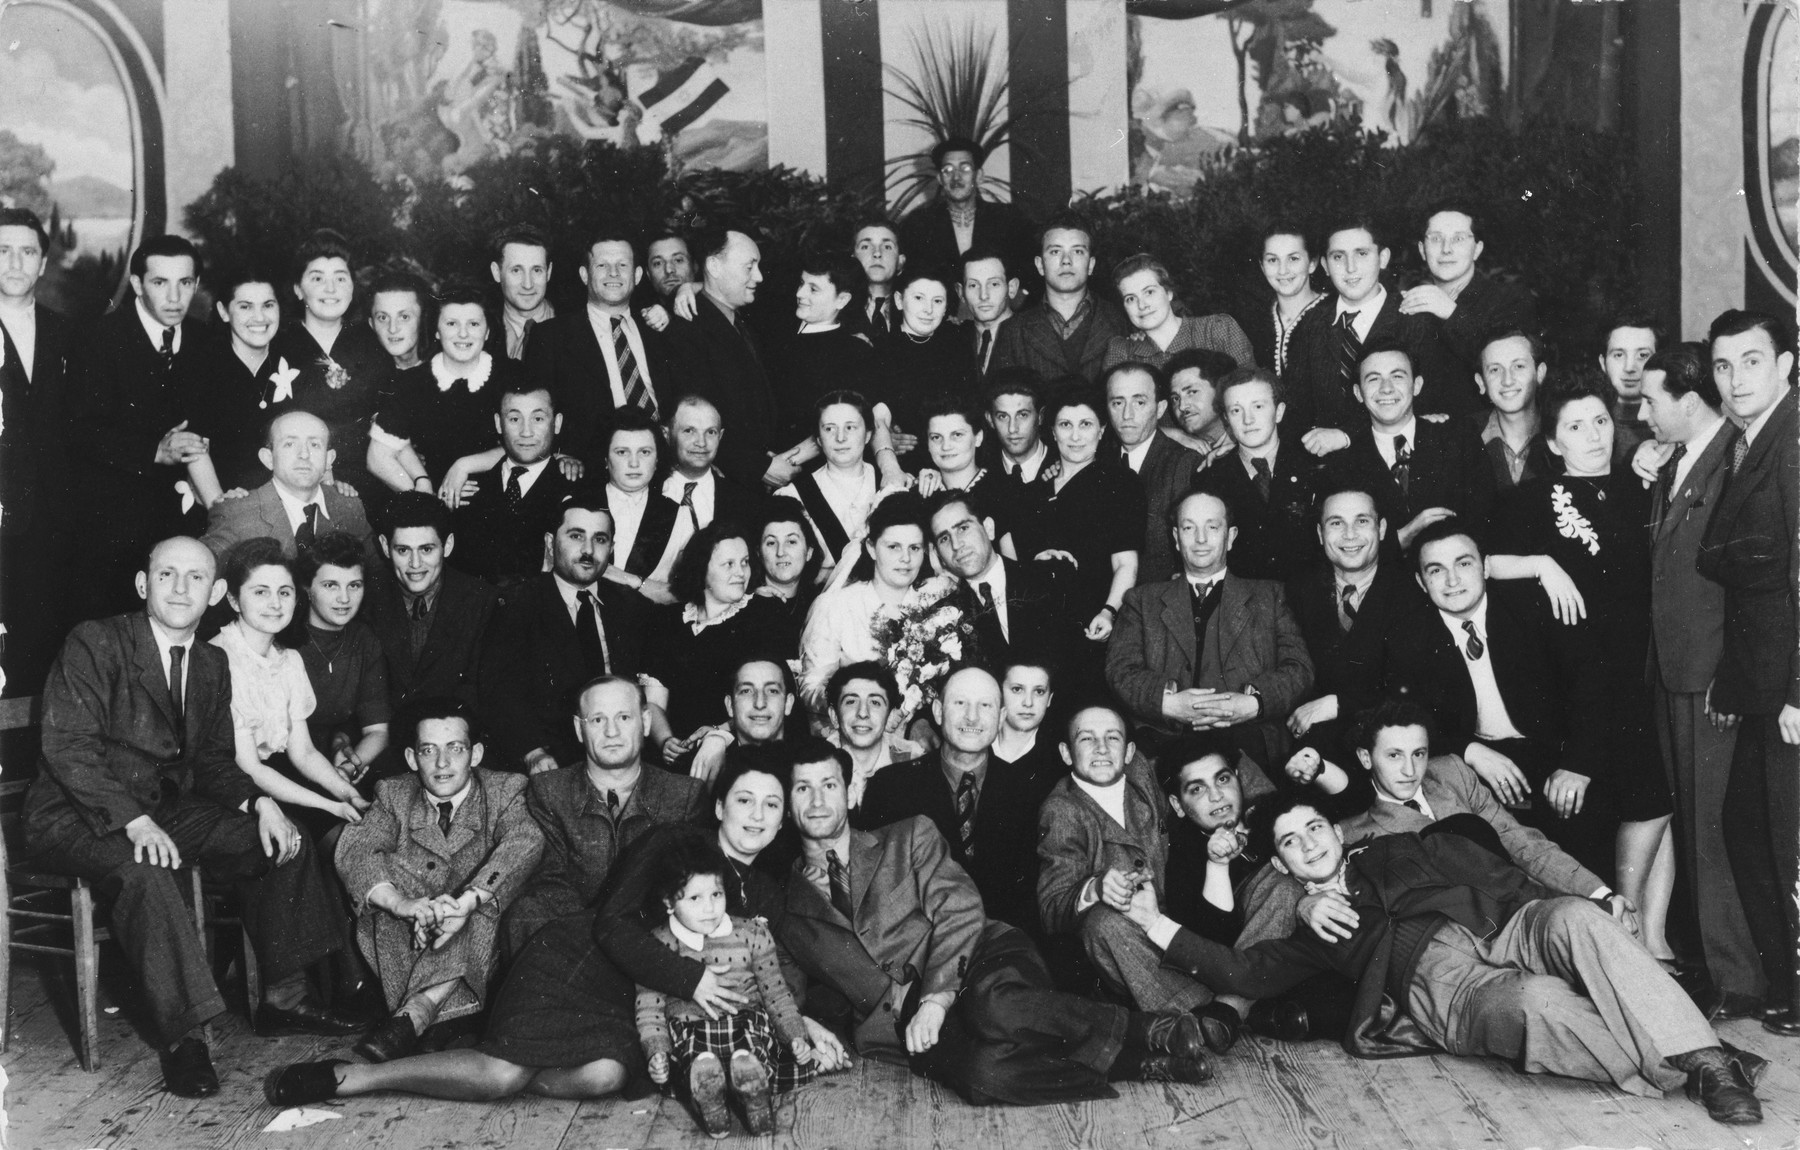 Jewish displaced persons celebrate a wedding in the Pocking DP camp.